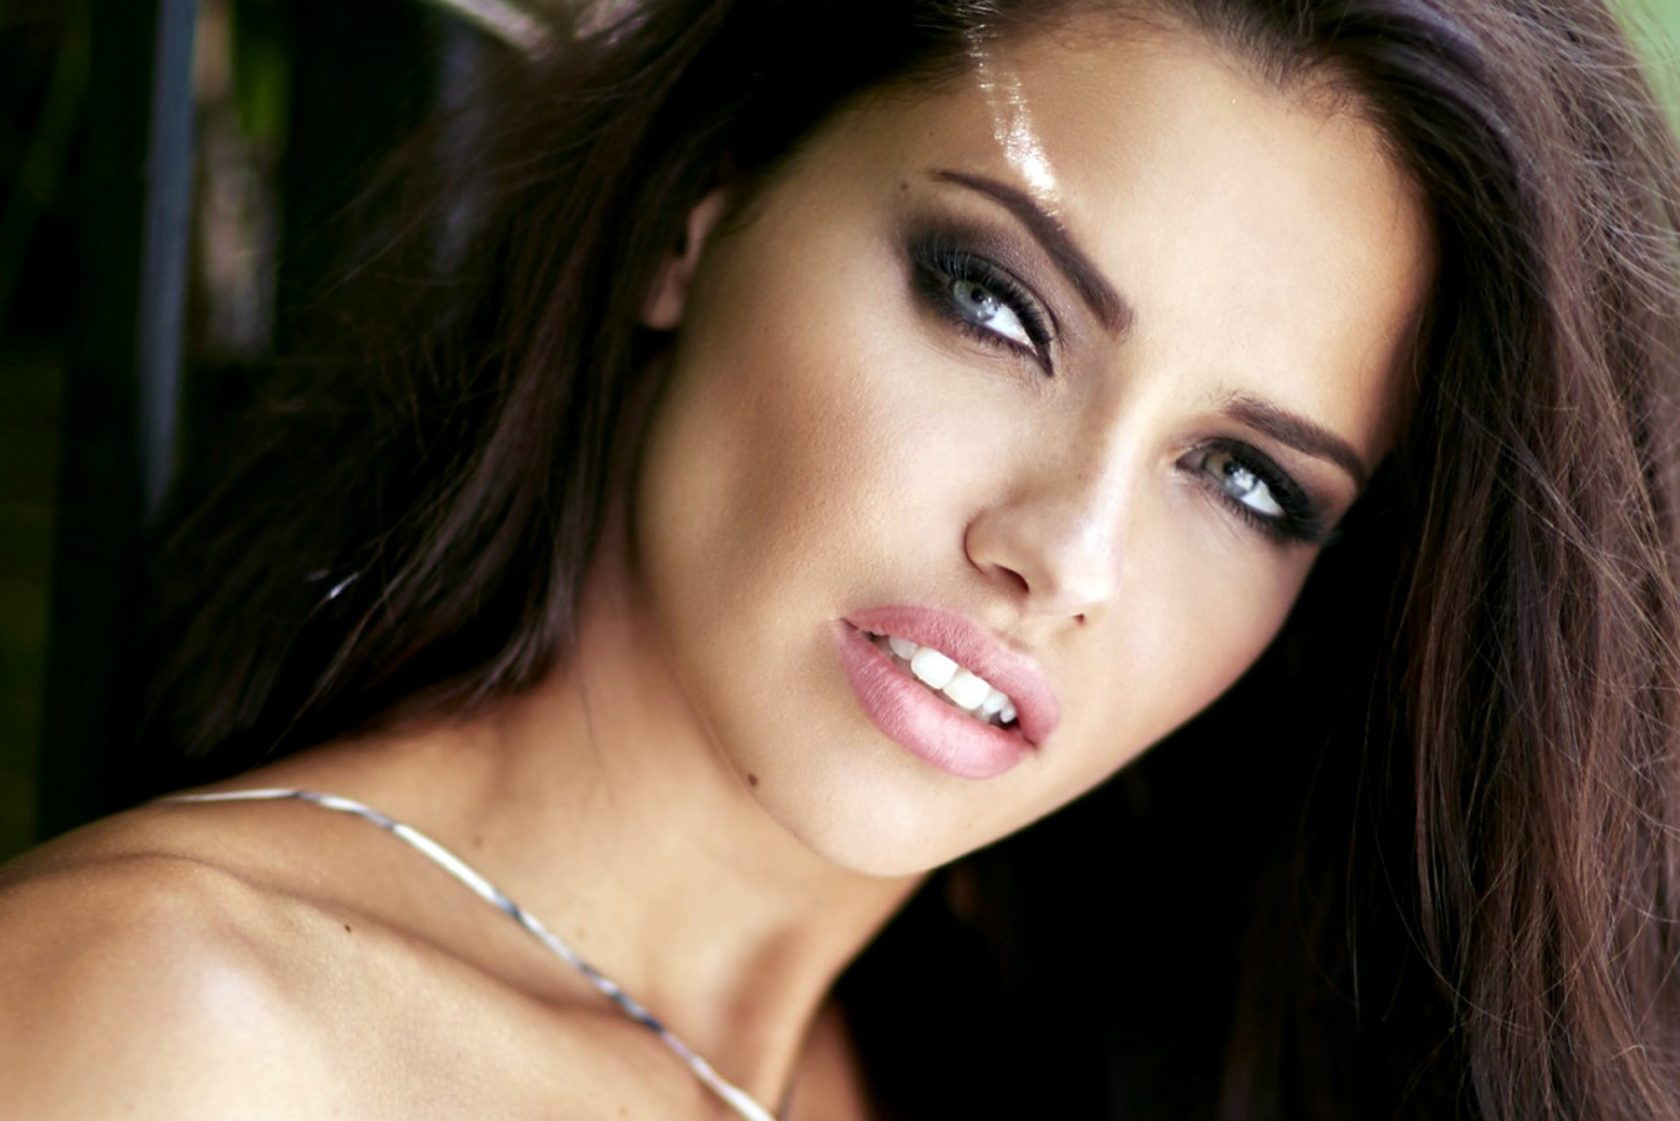 Brazilian fashion model Adriana Lima in the new promotional pictures for Maybelline 2016 advertising campaigns., Image: 307959858, License: Rights-managed, Restrictions: EDITORIAL USE ONLY, Model Release: no, Credit line: Profimedia, Balawa Pics